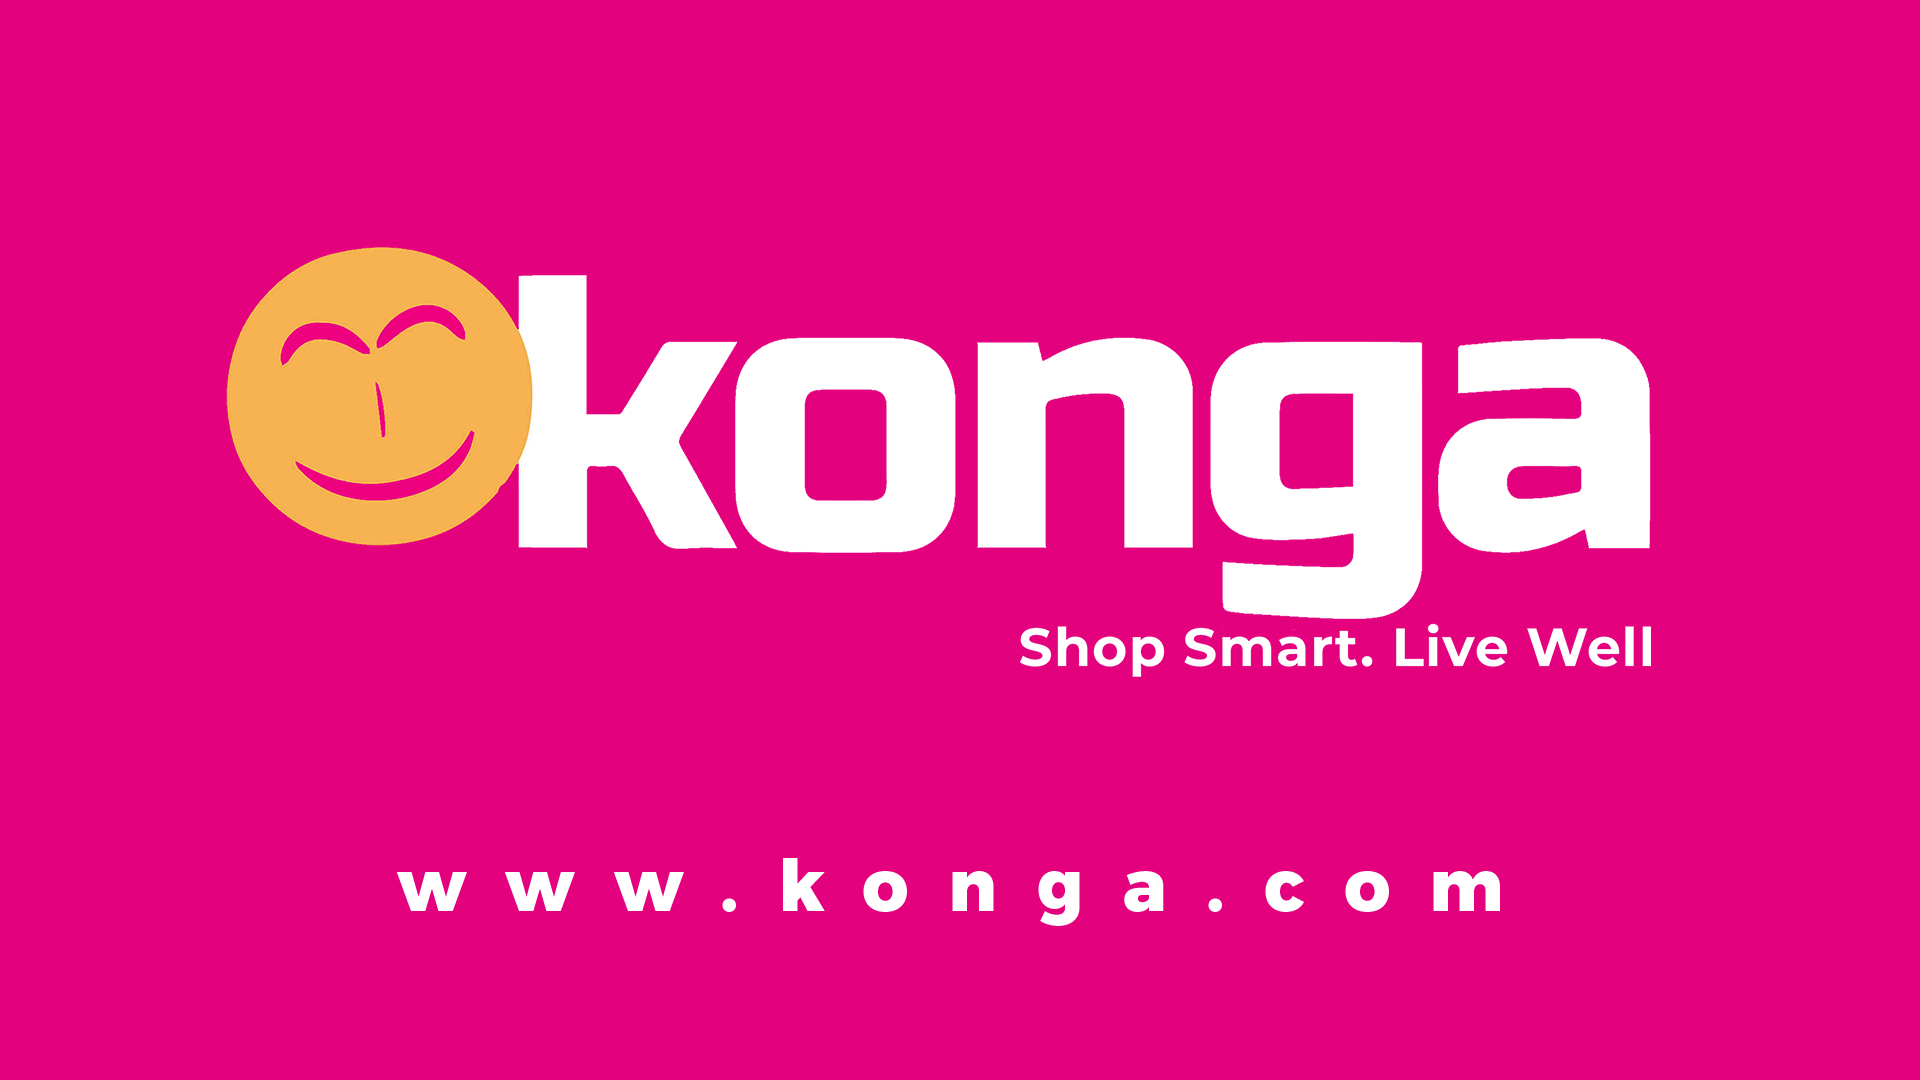 Konga website records huge traffic as shoppers grab Black Friday offers